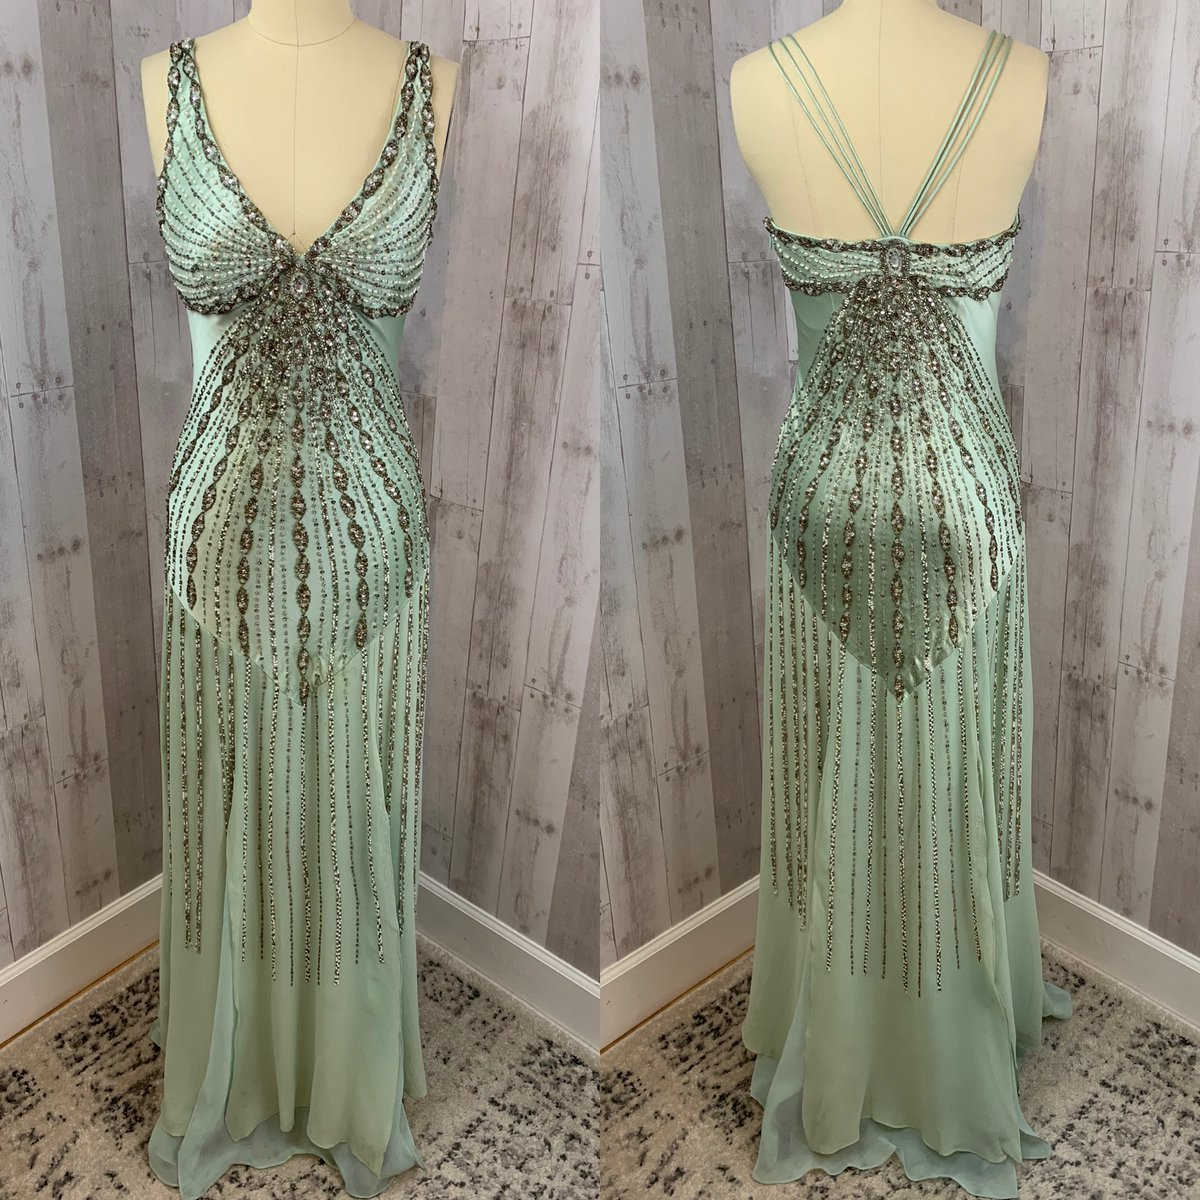 Shipping this stunning beauty off to its new owner today!  #hautecouture #couture #beaded  #vintage #truevintage #suewong #beadedsuewong #beadedgown #vintageandvelvetclothing #vintagefashion #vintagestyle #1940sfashion #retro #pinup #vintageclothing #vintageshop #vintagestorepic.twitter.com/K8q6koiPCi